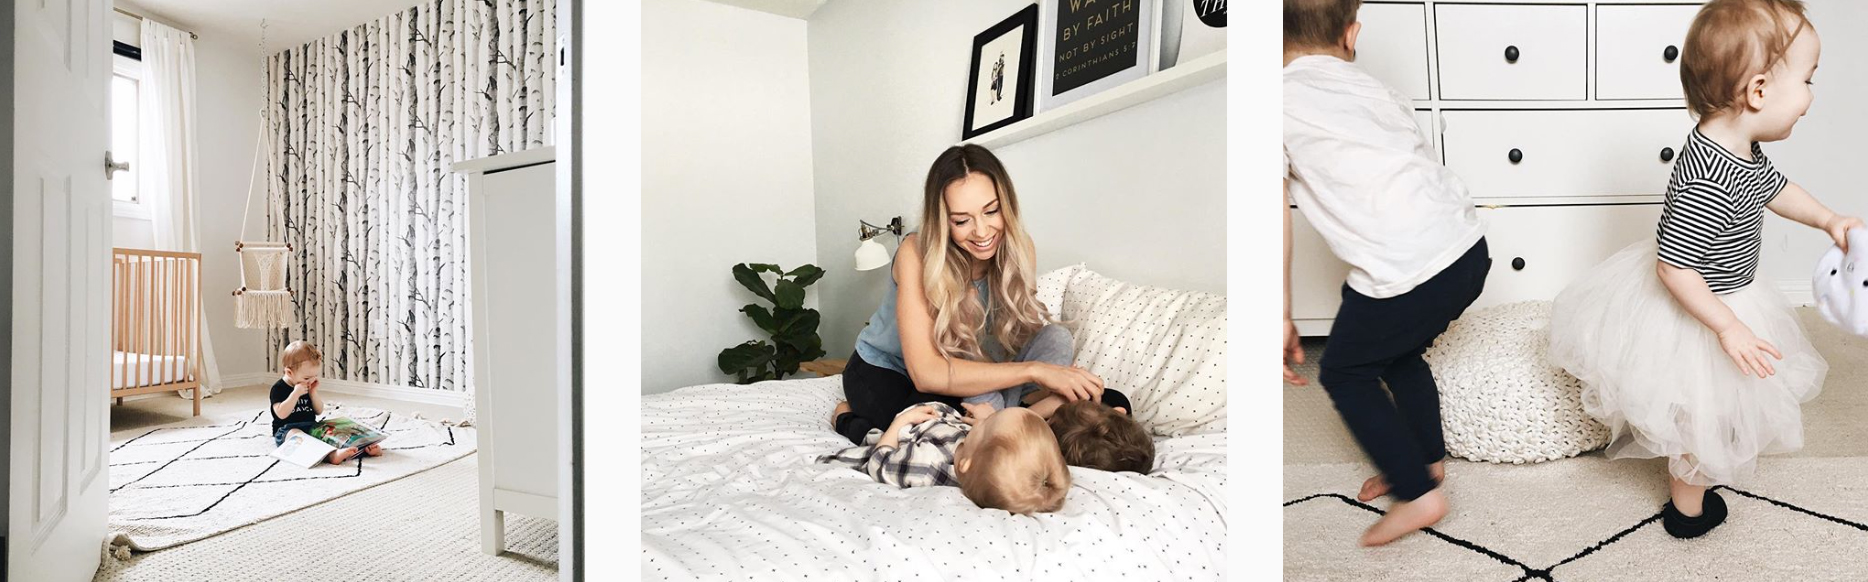 5 Cool Moms to Follow on Instagram - Planoly Blog - Mother's Day - Britt Havens